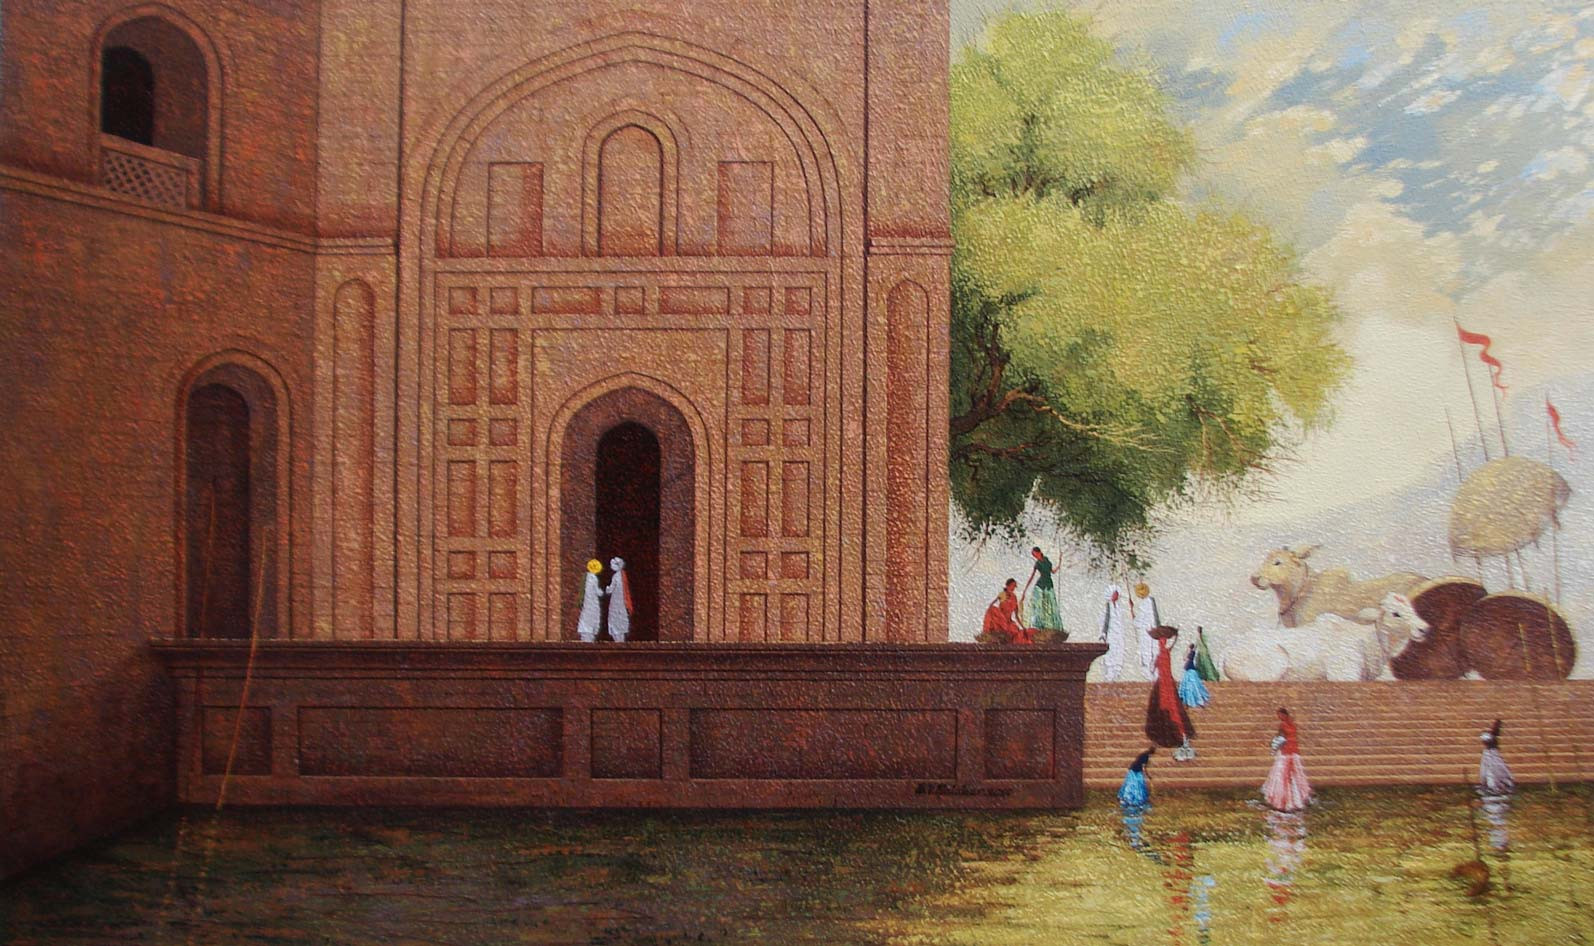 Indian Old Monument